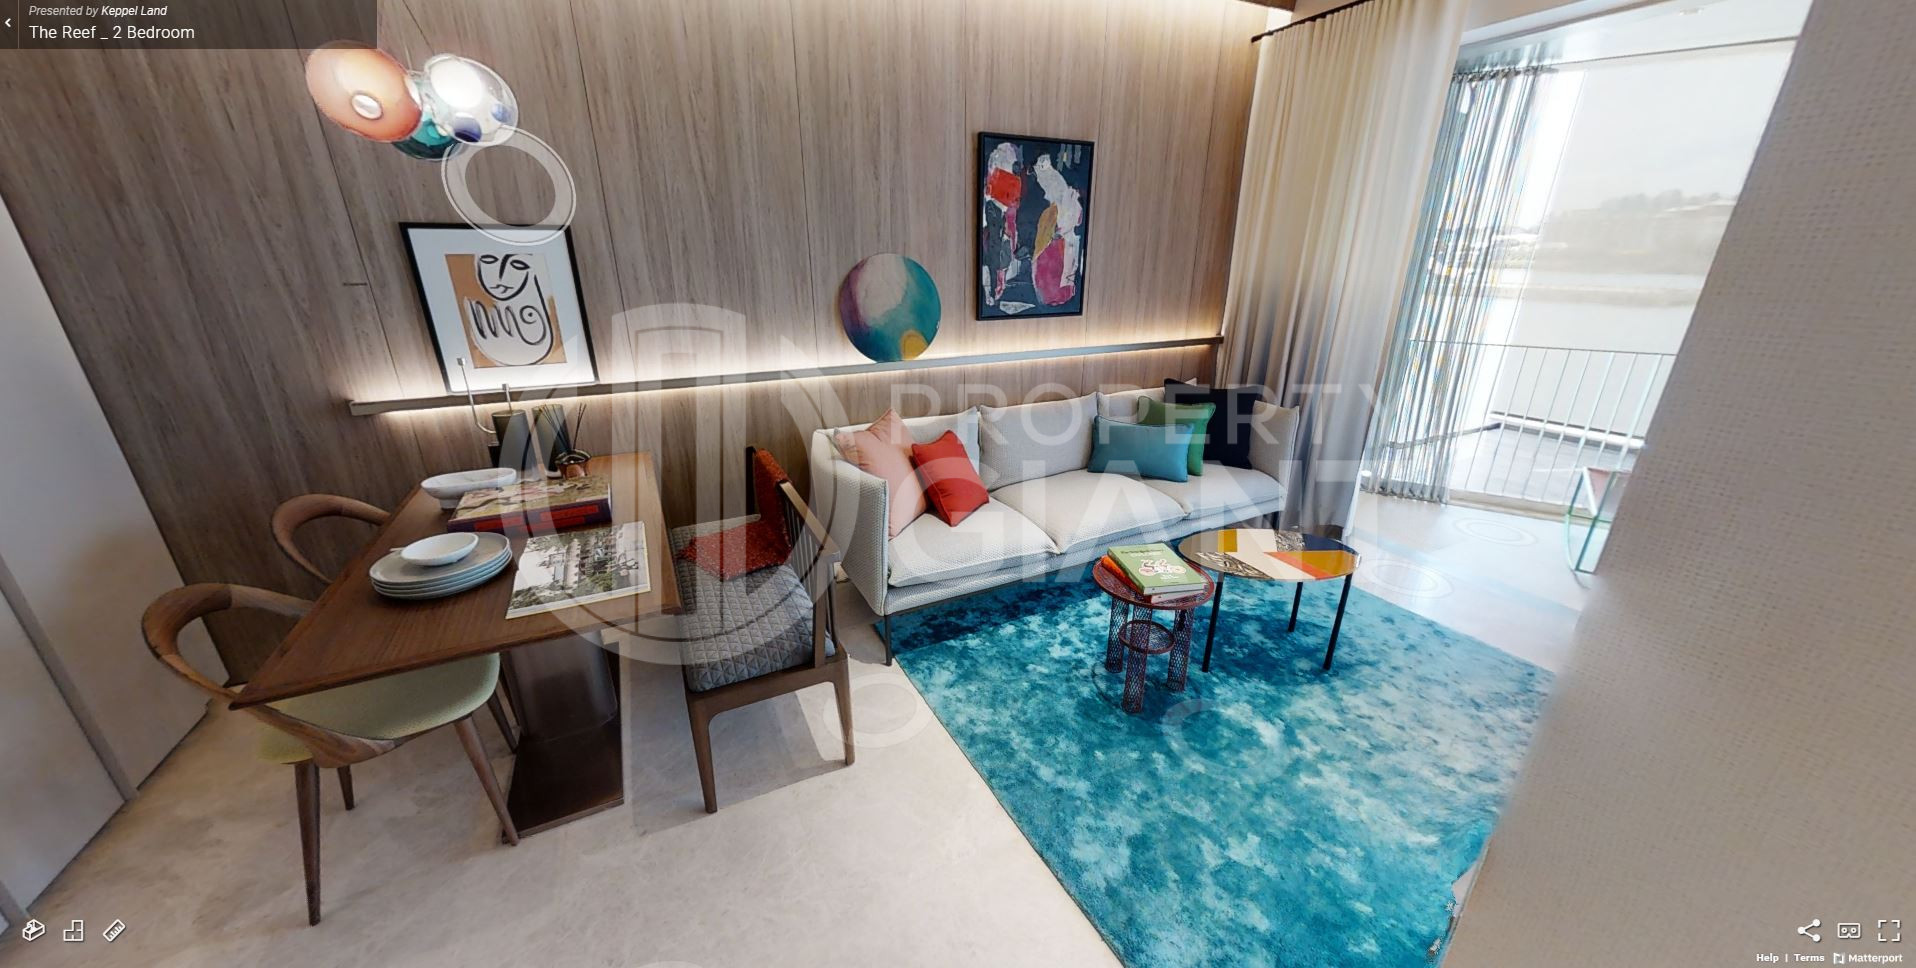 3D Virtual Tour of The Reef at King's Dock 2 Bedroom